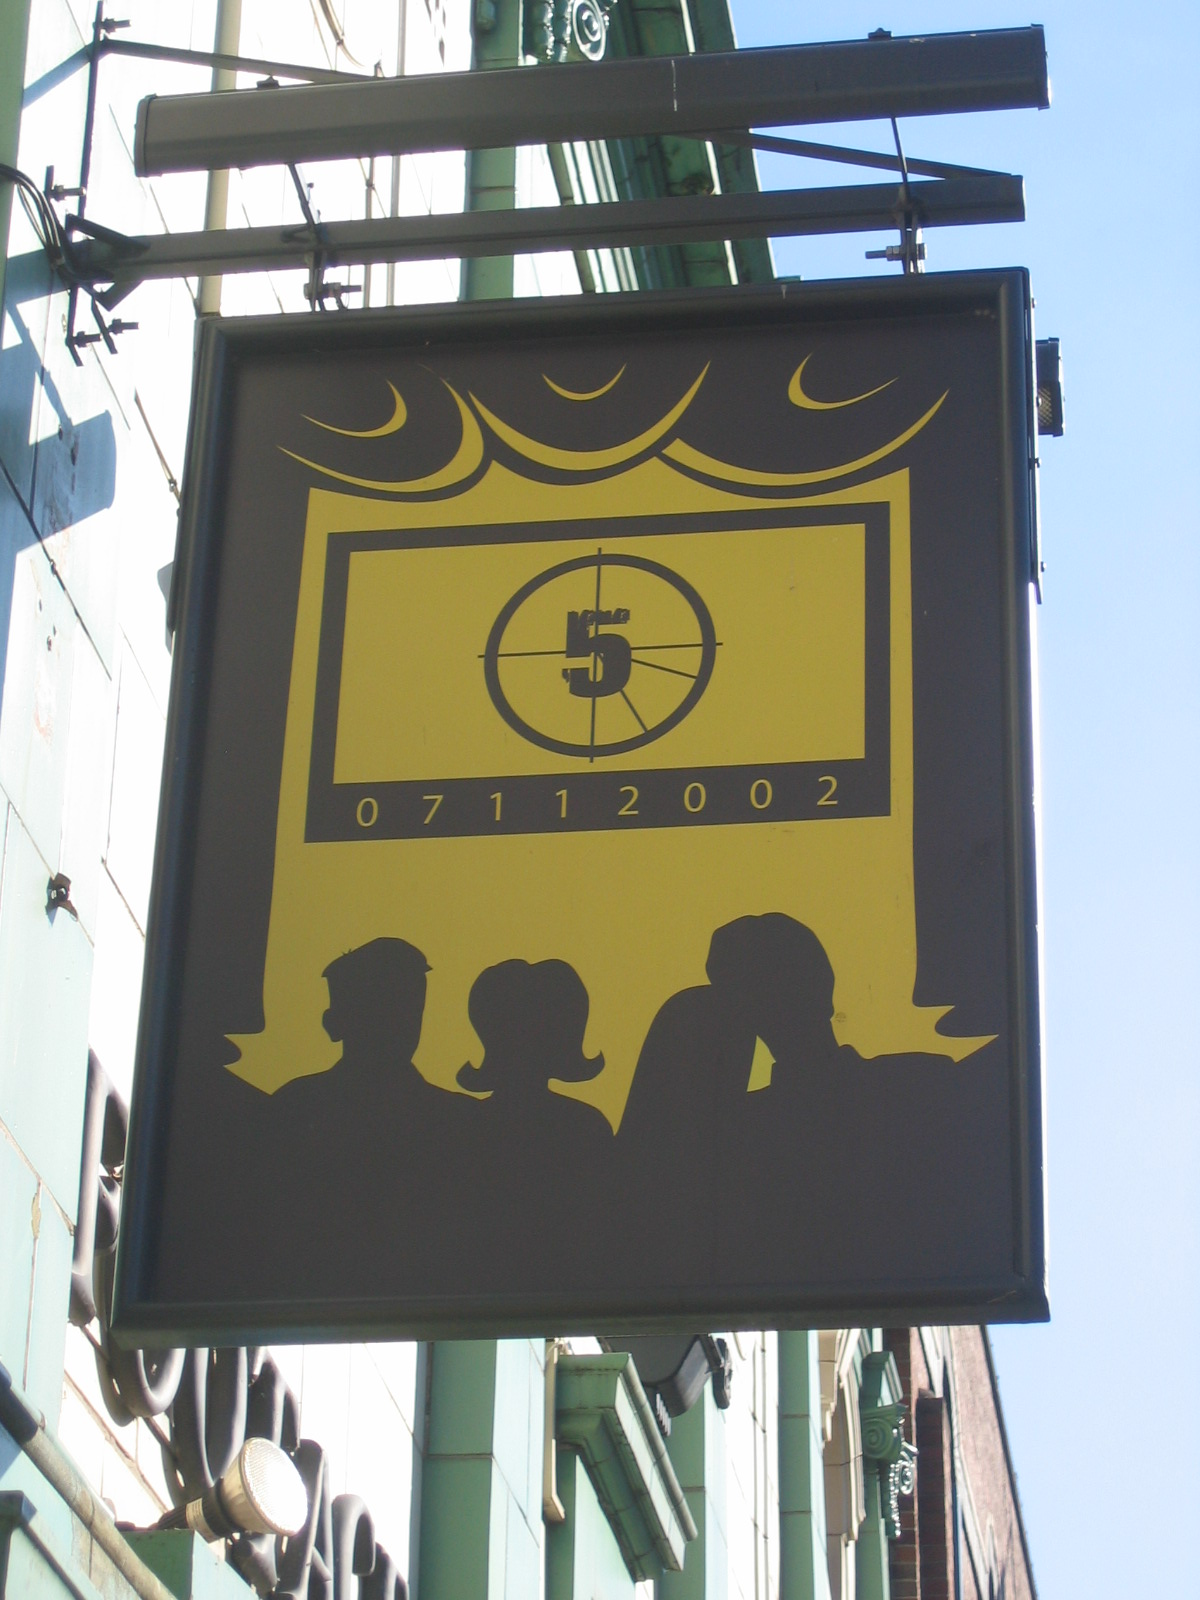 Photo taken by me – The Footage pub sign – Manchester